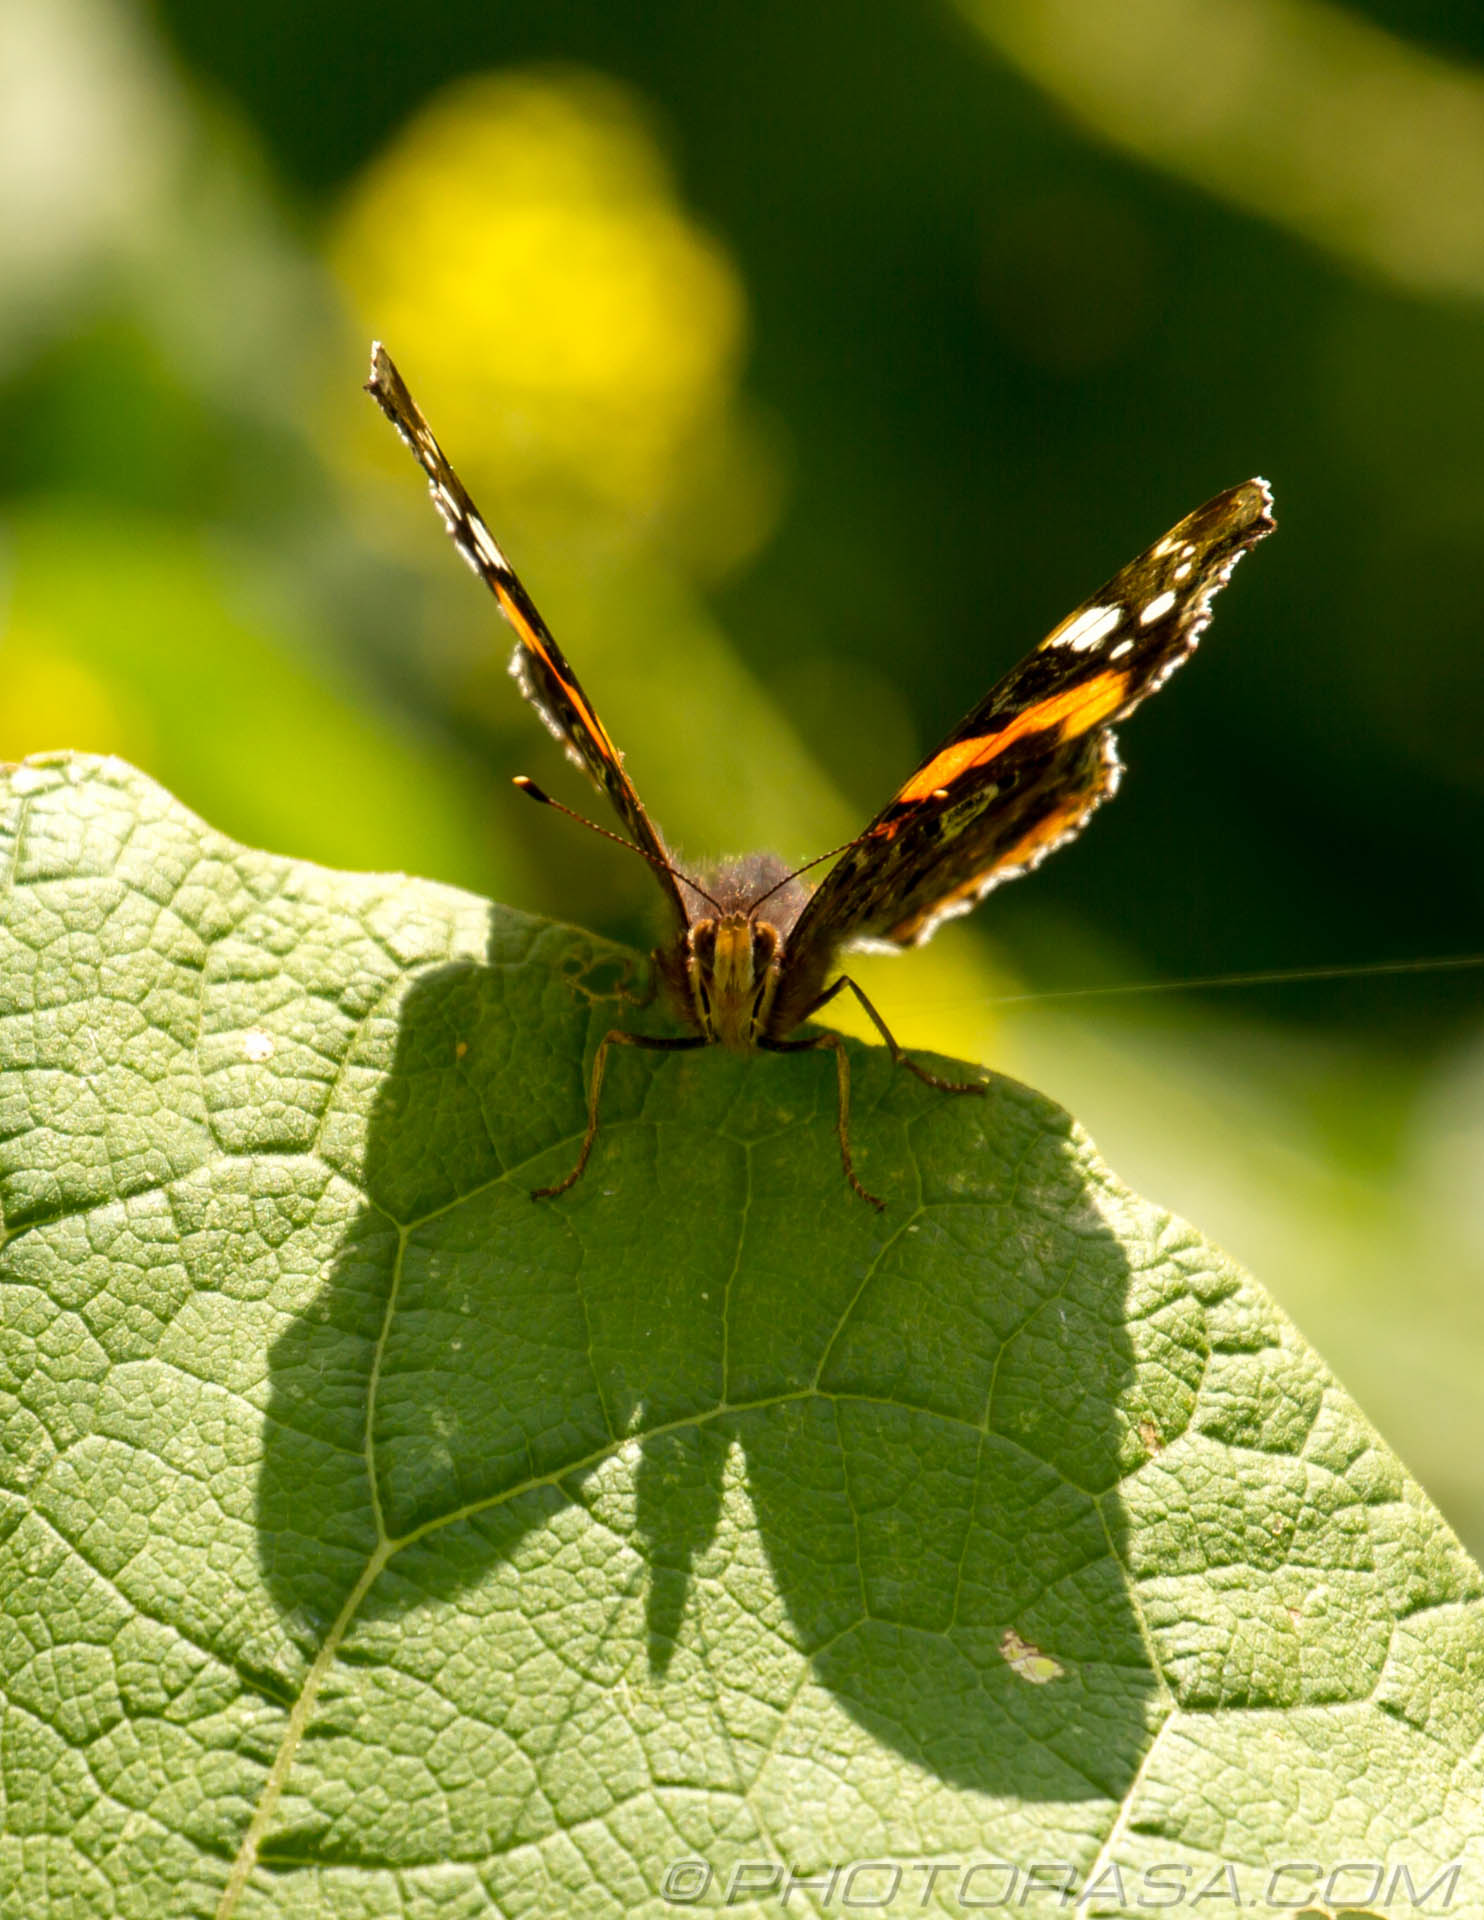 https://photorasa.com/red-admiral/red-admiral-on-leaf-with-shadow/